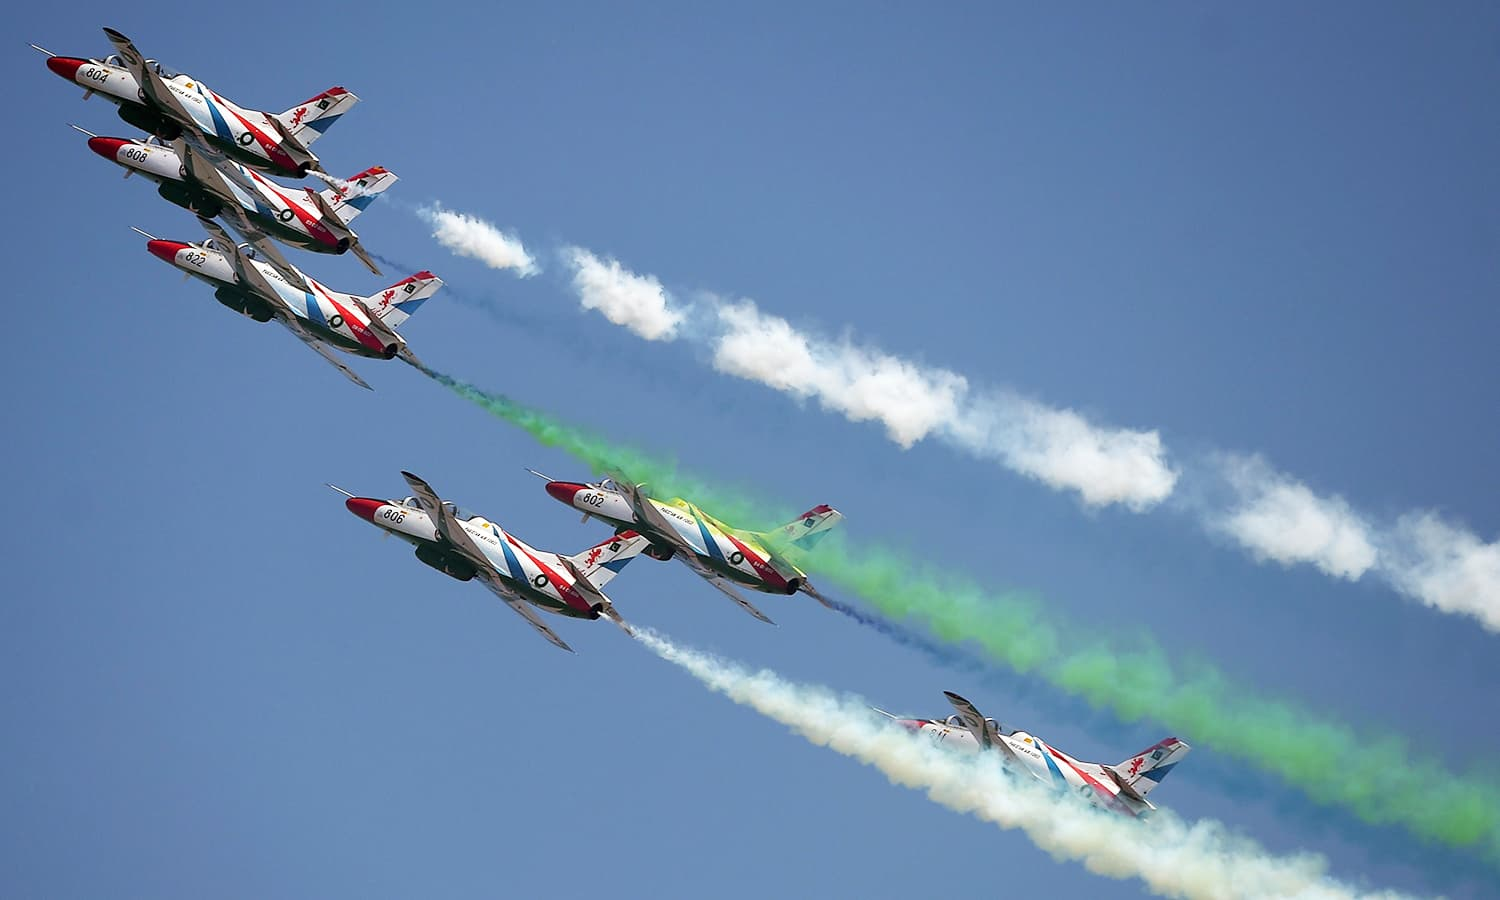 Pakistani jets perform aerobatic manoeuvres during the Pakistan Day military parade in Islamabad. ─AFP